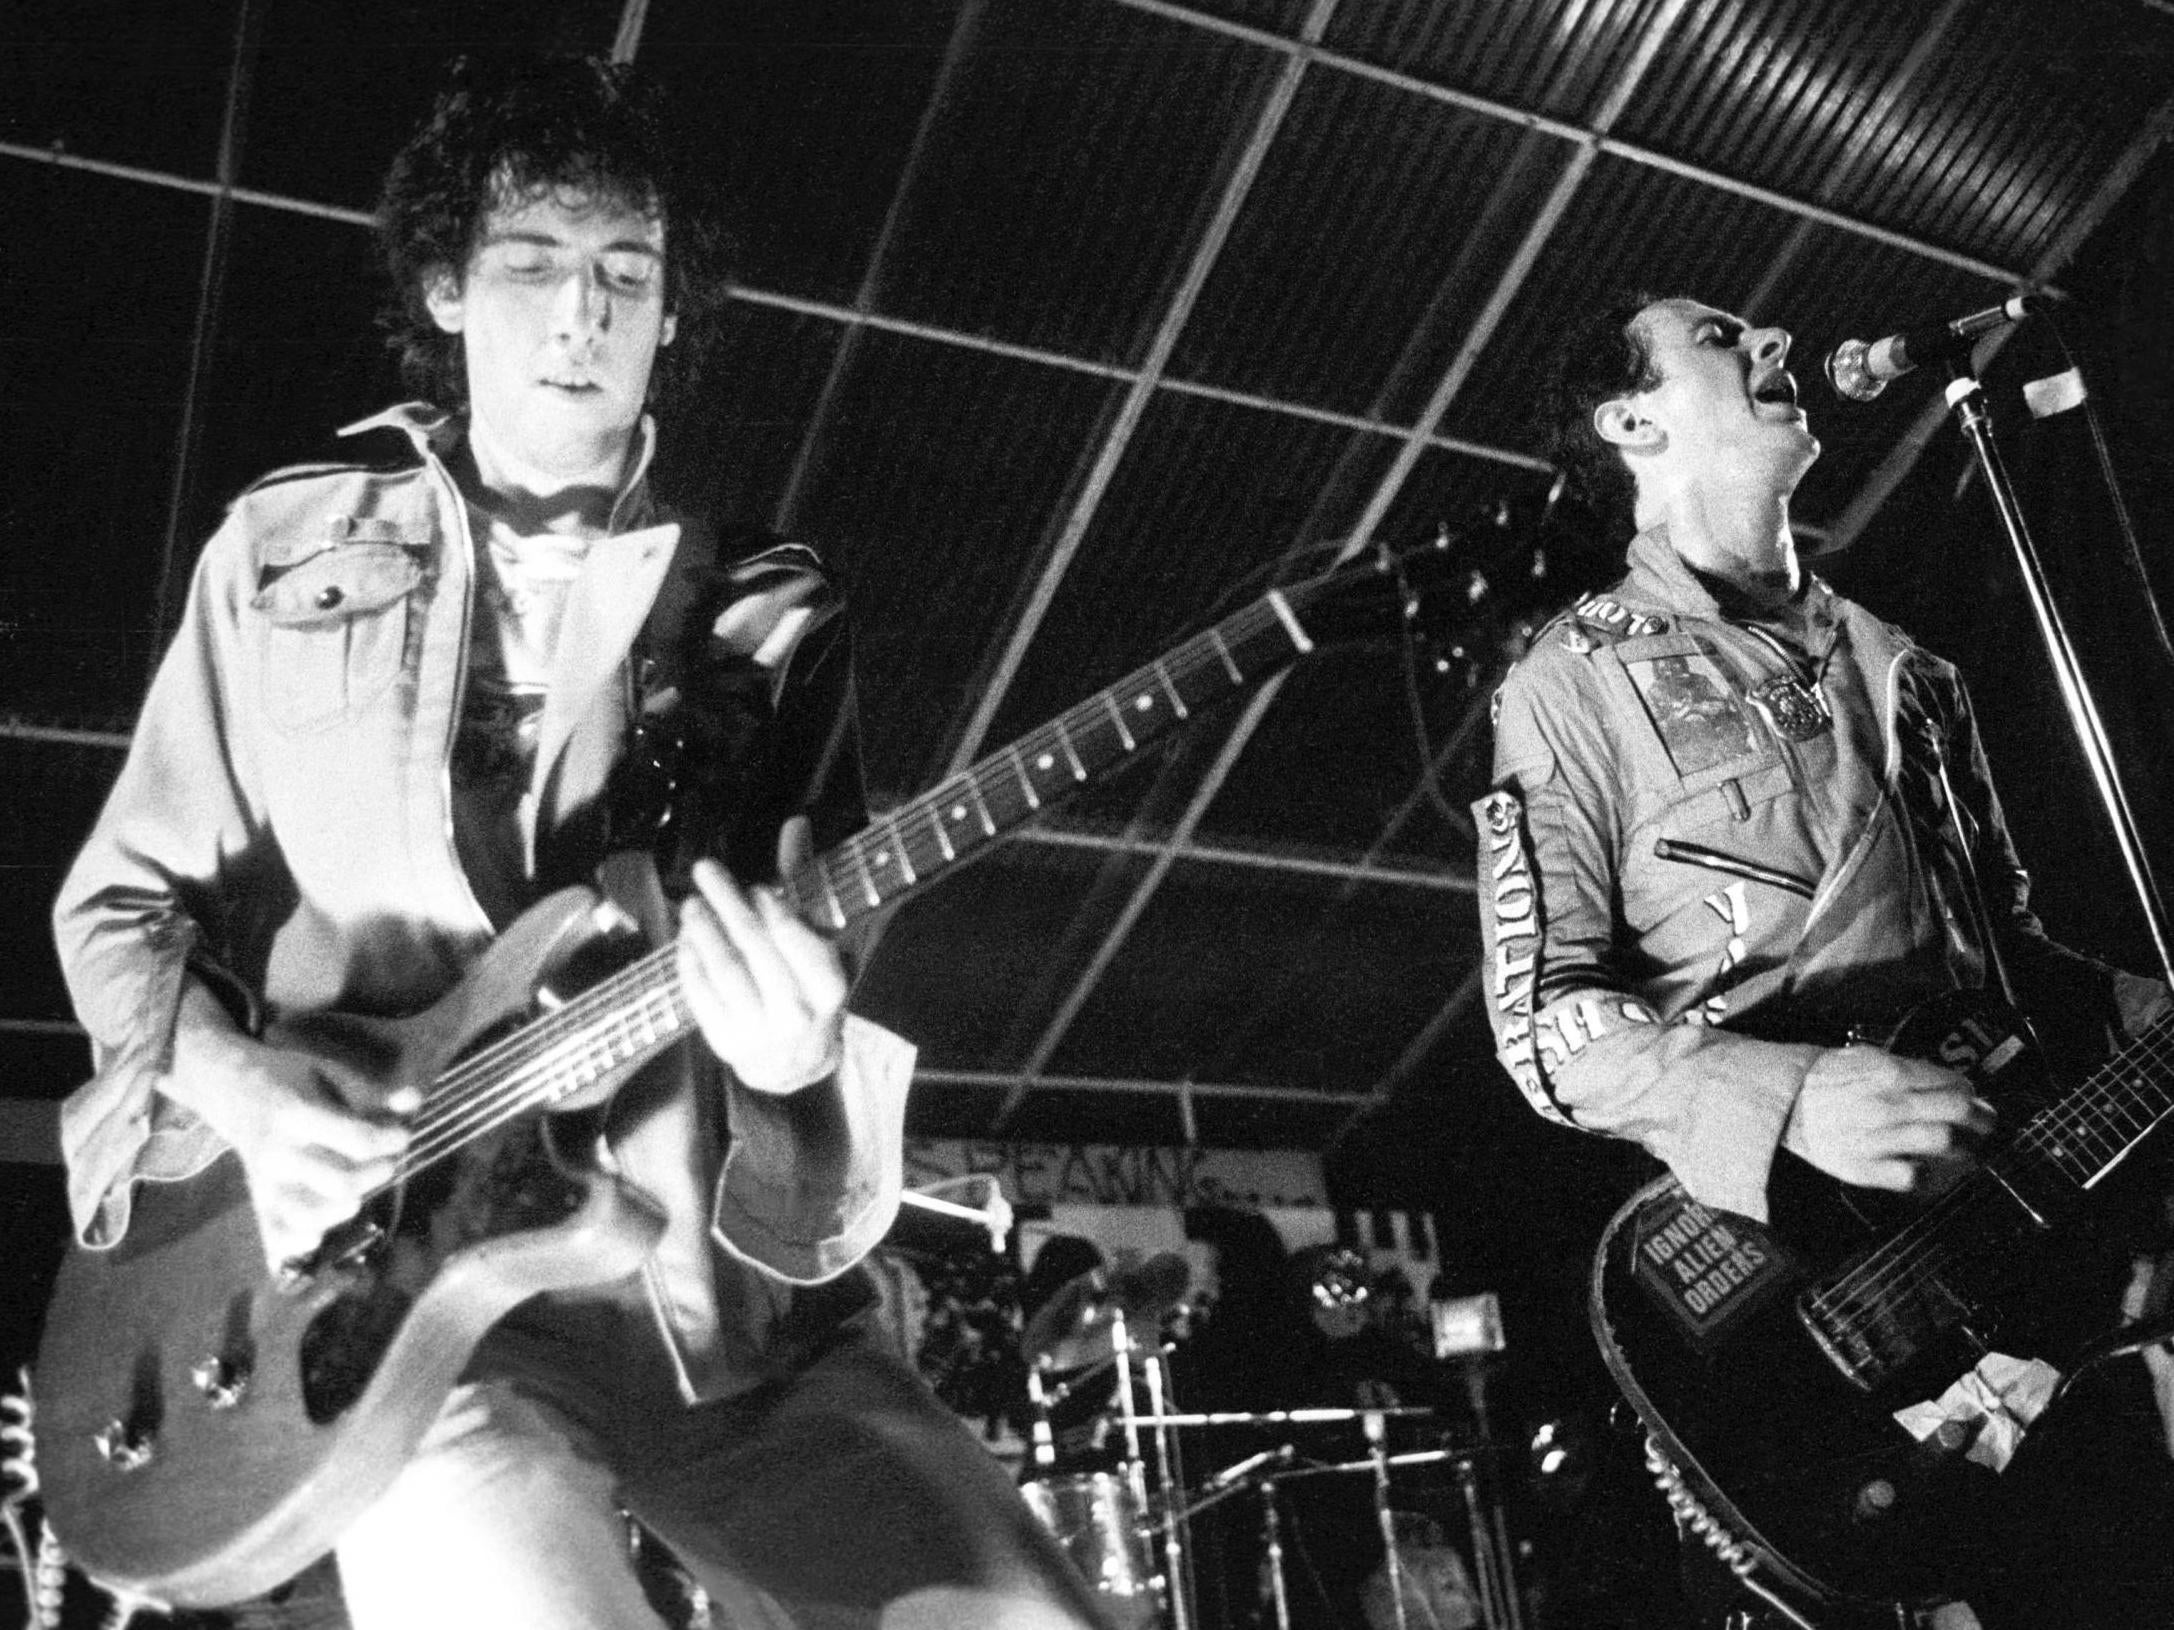 London Calling at 40: How The Clash shattered punk orthodoxy and created a masterpiece